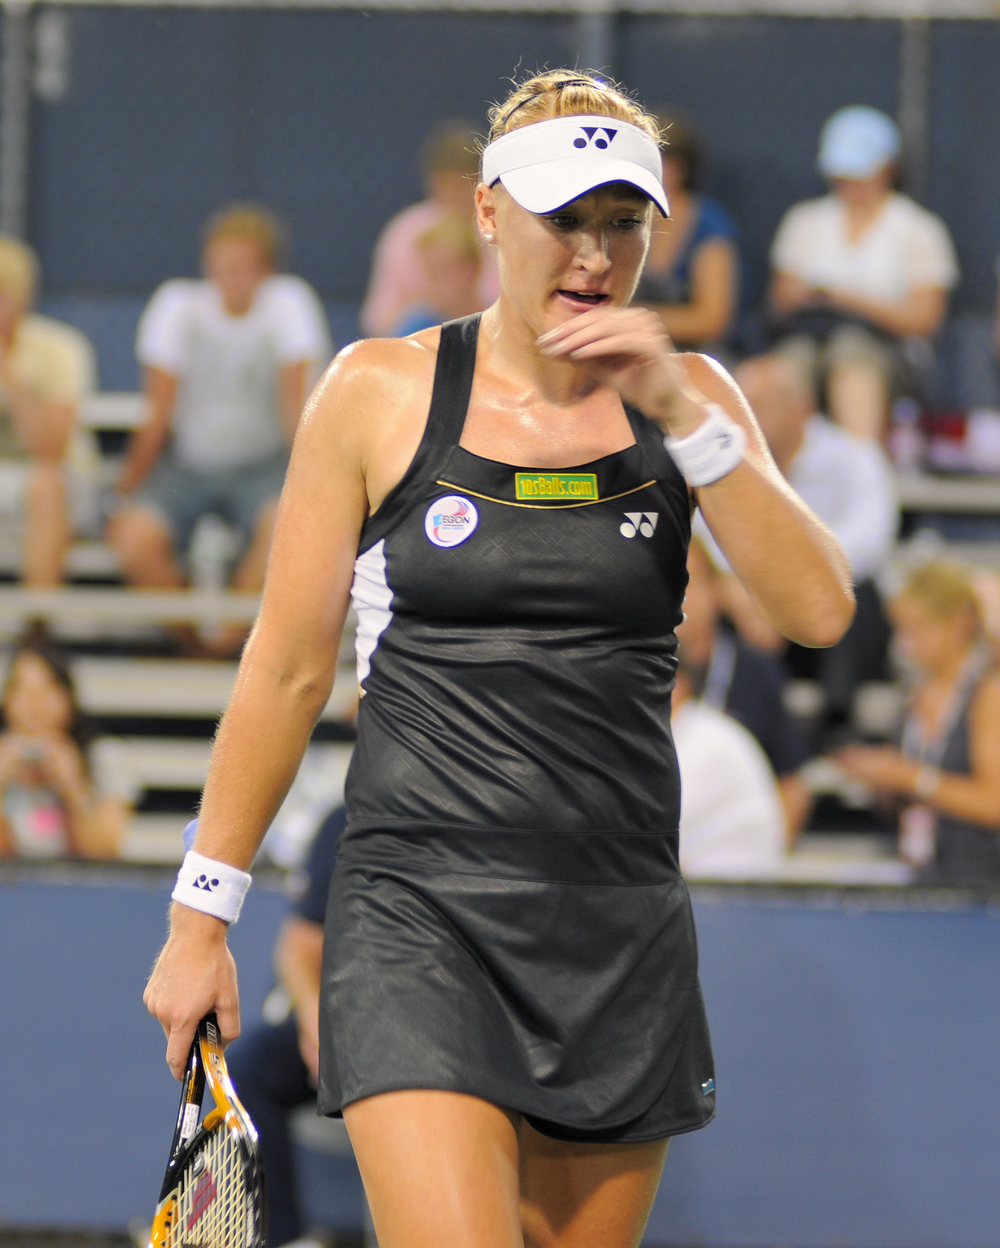 Elena Baltacha at the US Open in 2010. Photograph by Chris Mesiano.